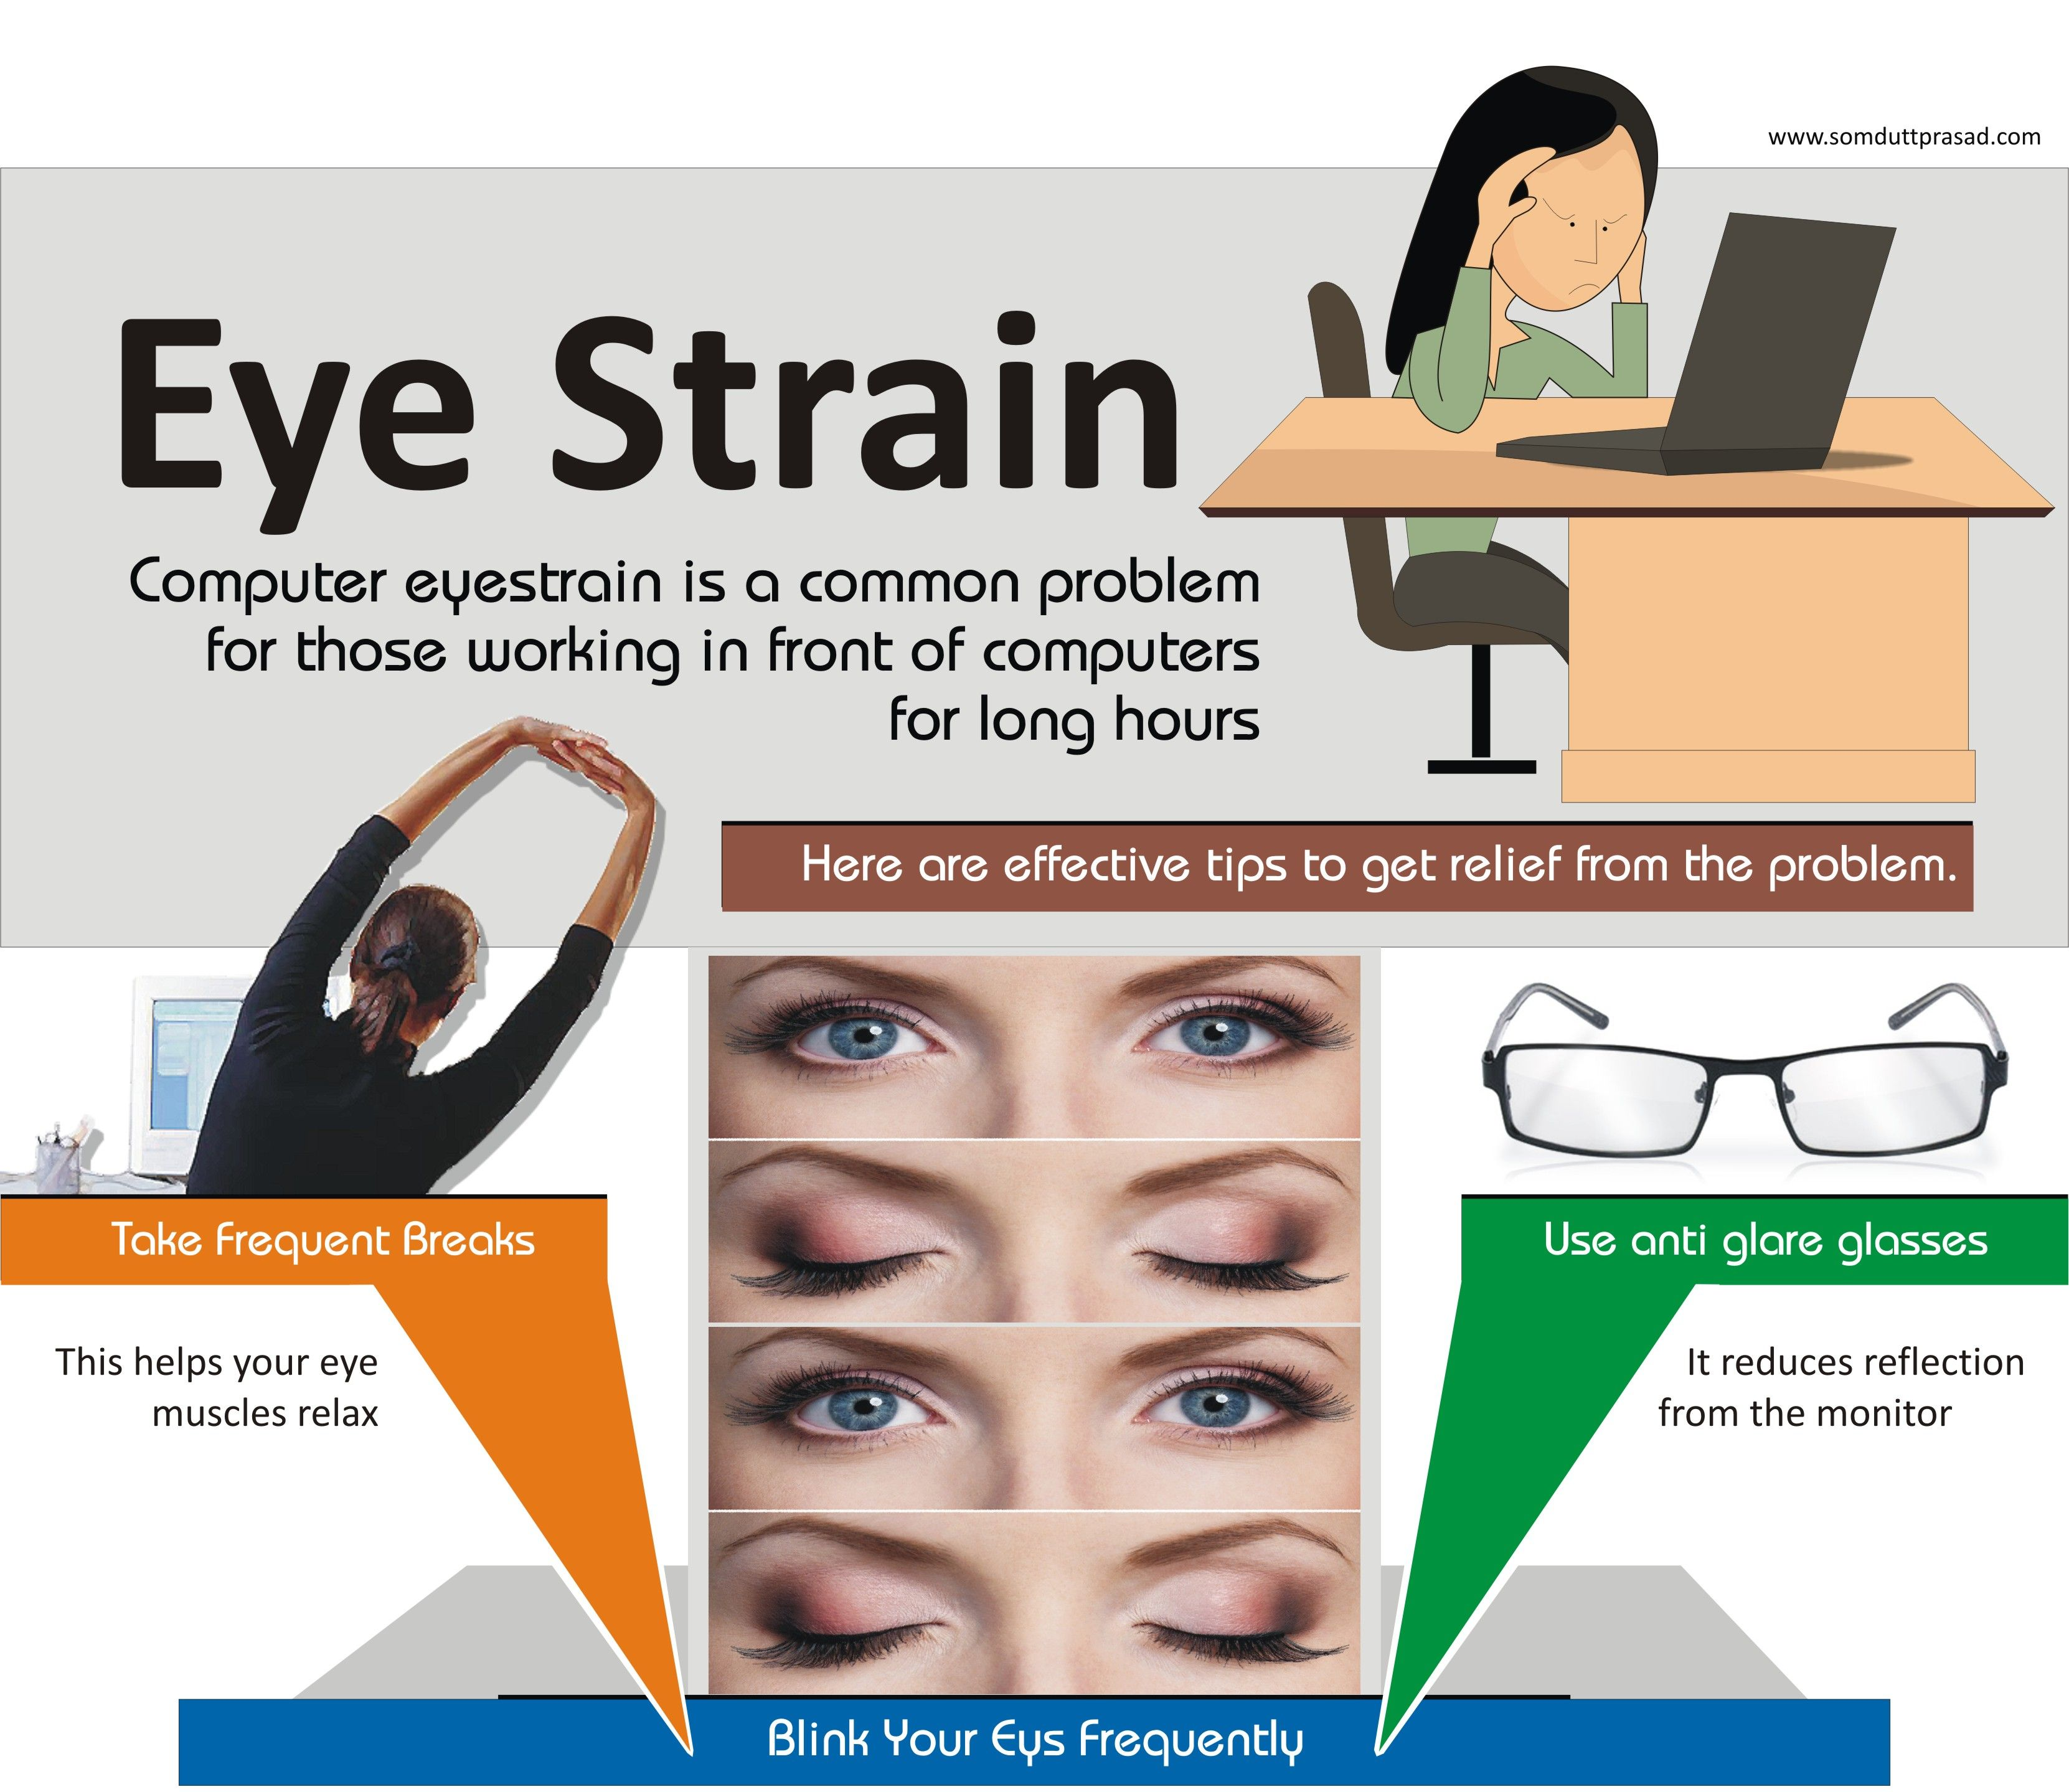 10 easy steps to get computer eye strain relief loveyoureyes 10 easy steps to get computer eye strain relief loveyoureyes eye saving healthcare maintenance pinterest eye and eyes problems nvjuhfo Gallery